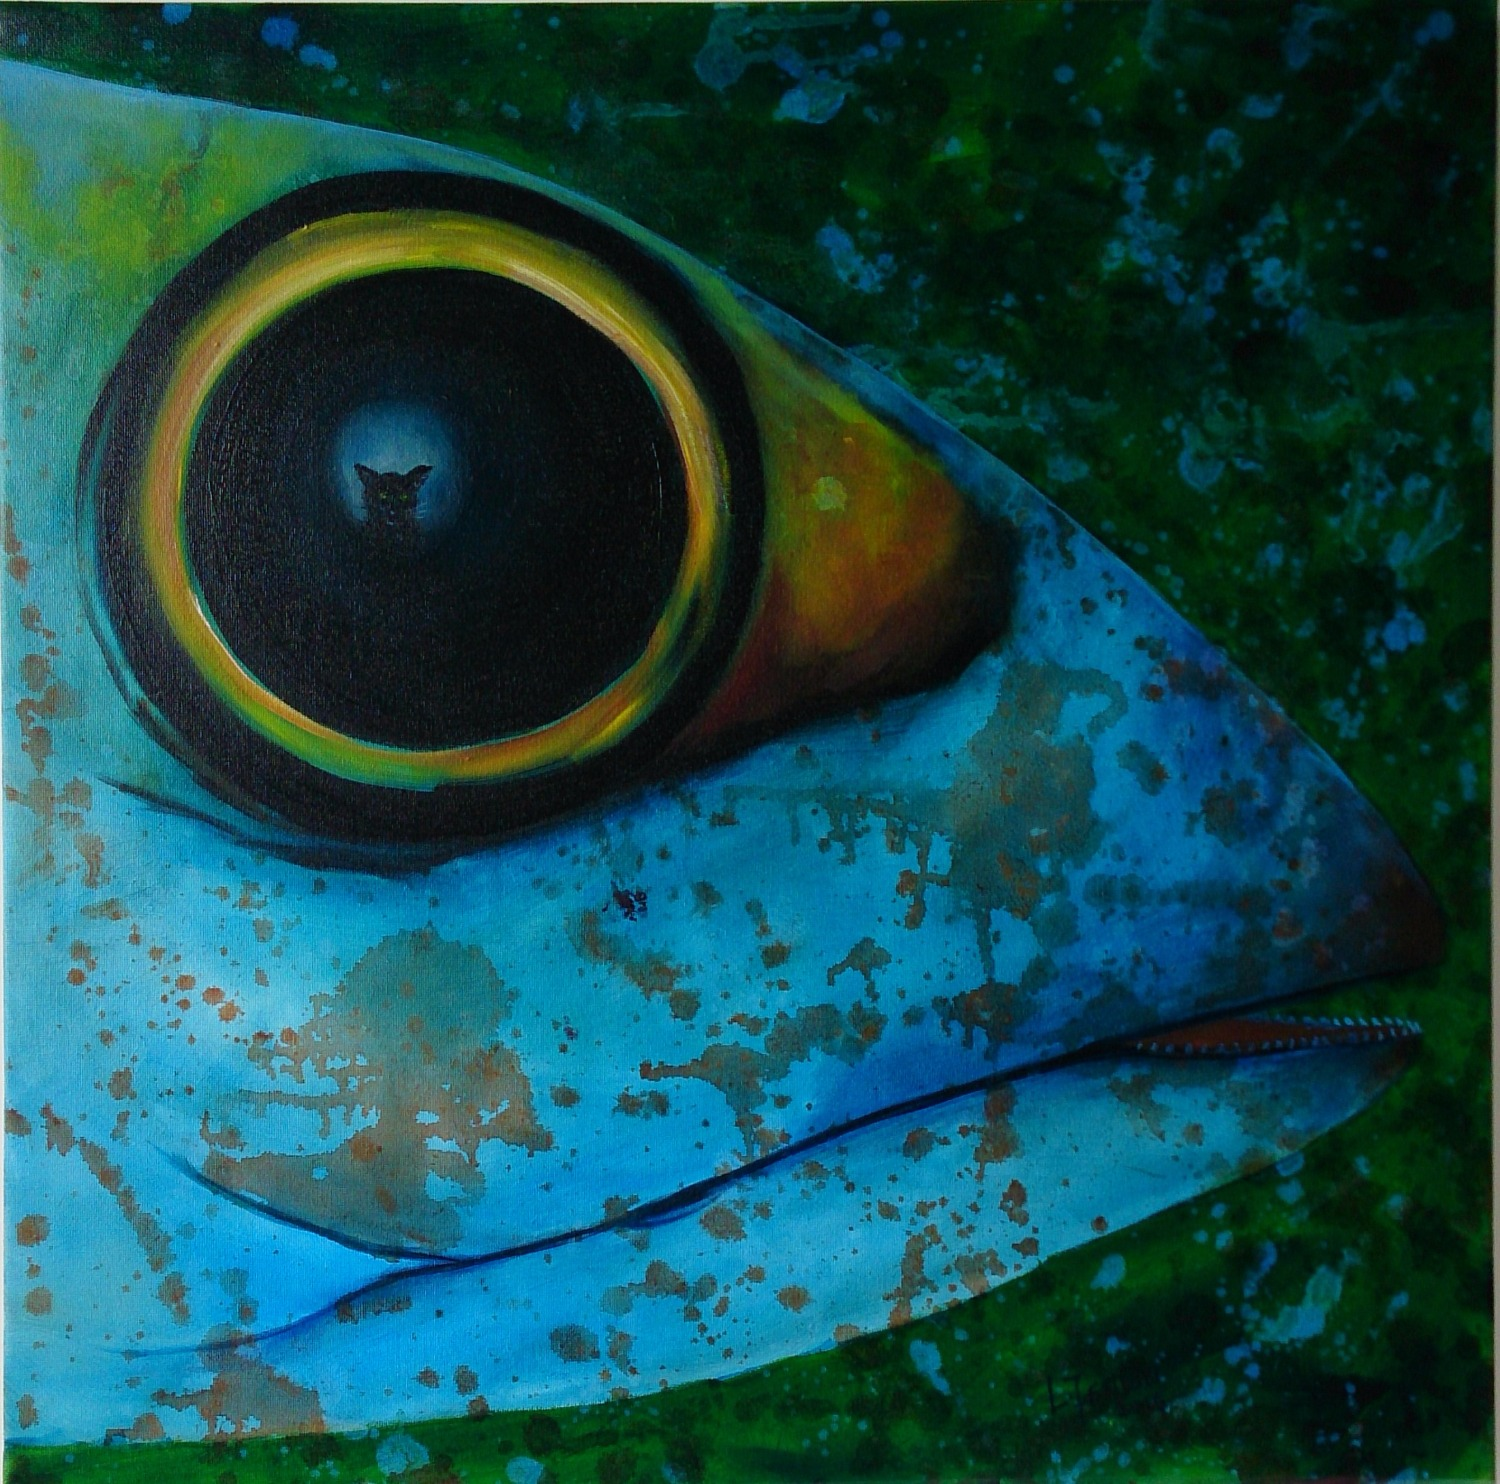 Fate of Mackerel II - Oil on canvas